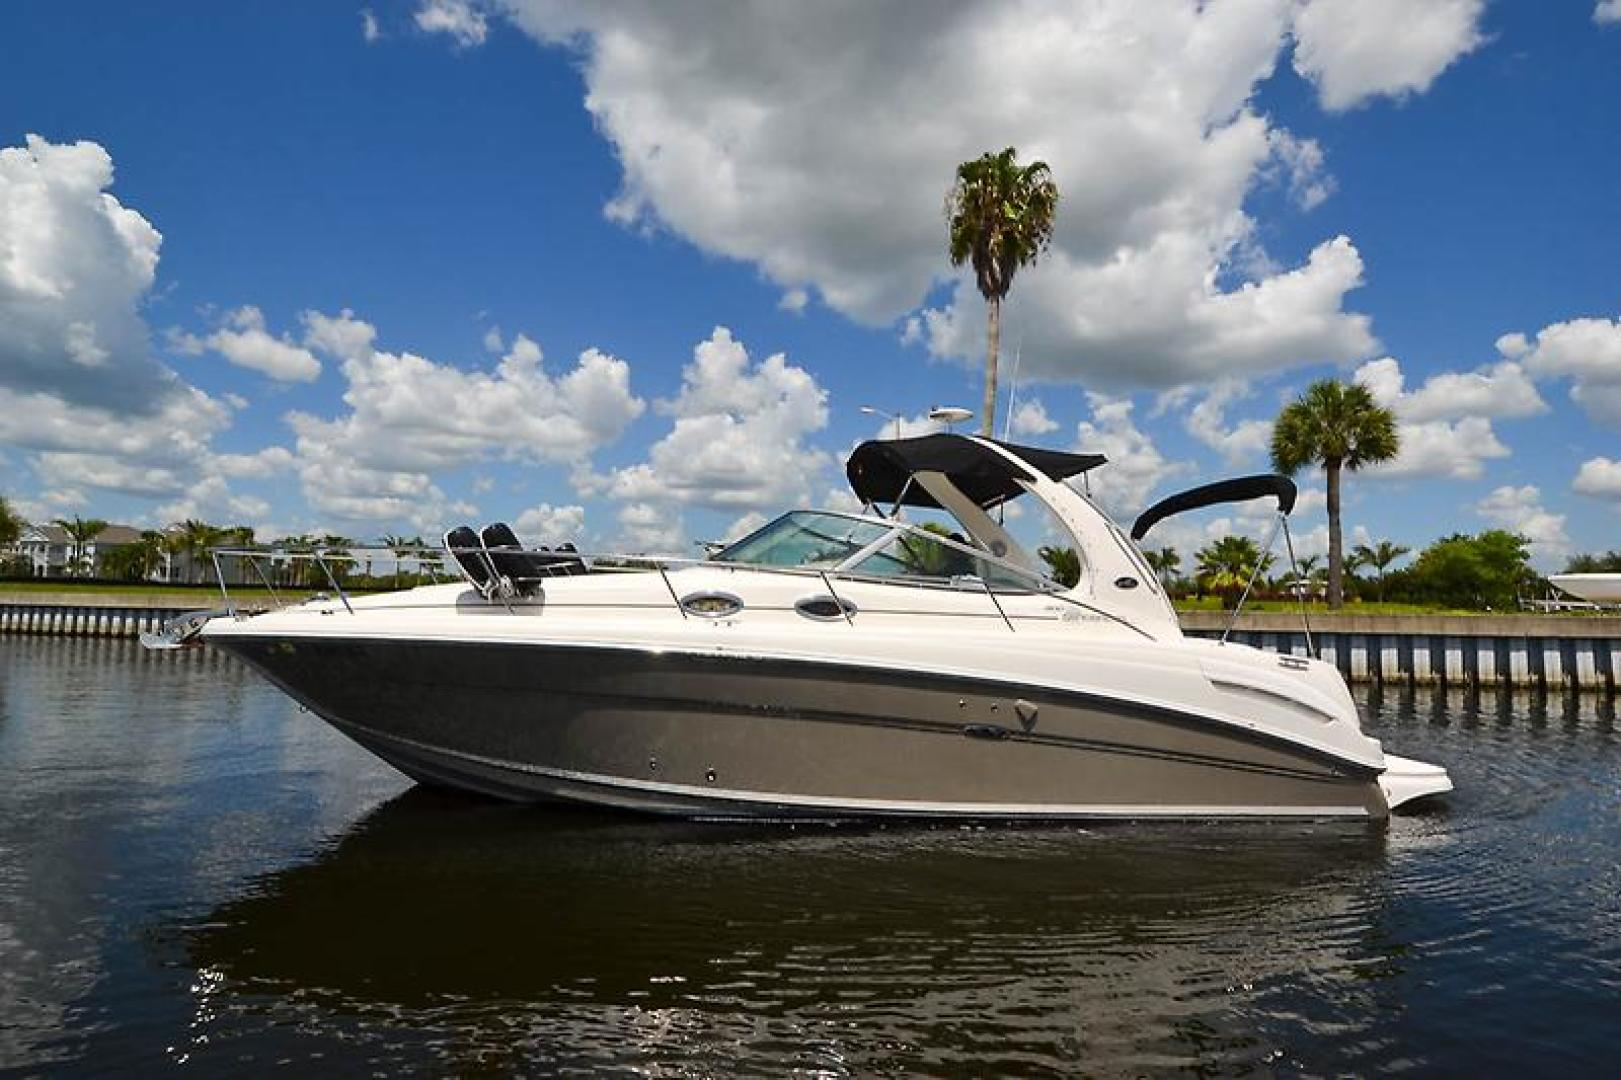 2006 Sea Ray 300 Sundancer-22-2.jpg